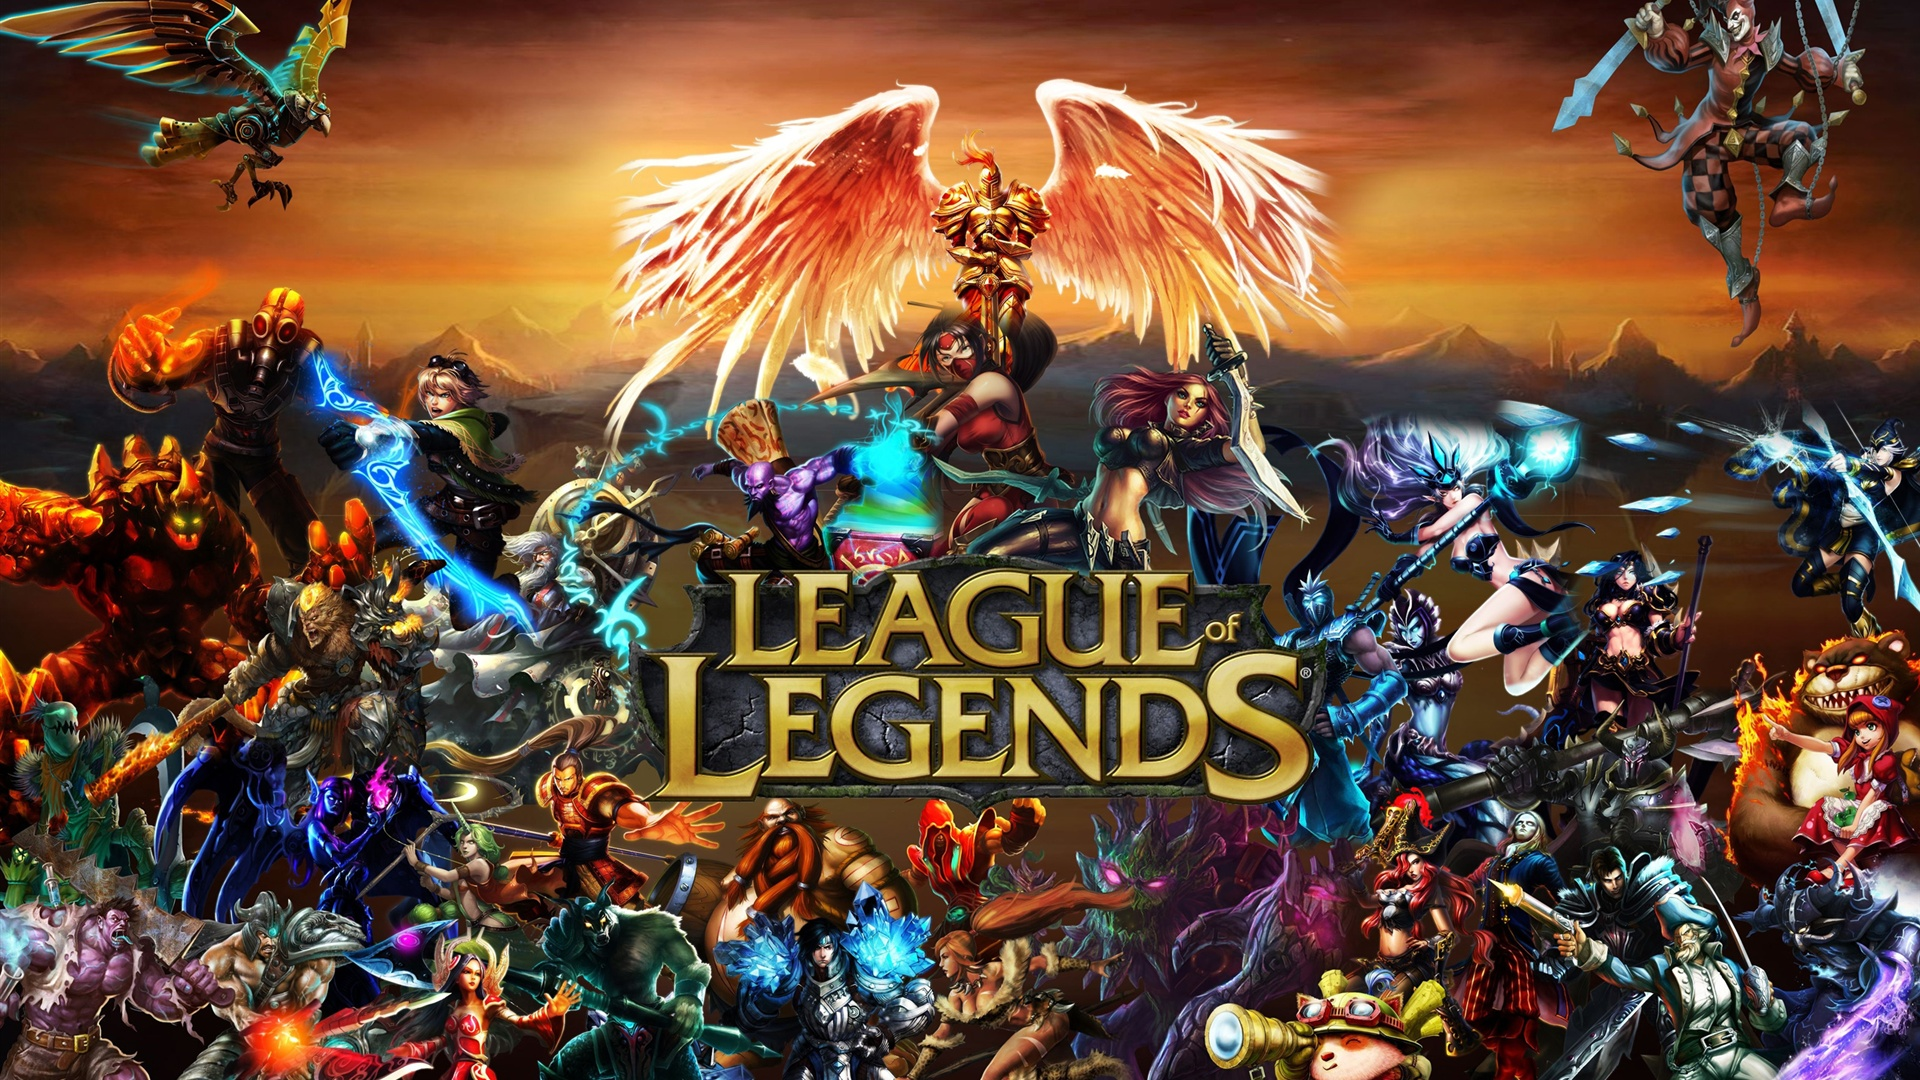 League Of Legends Hd Wallpapers Backgrounds Images